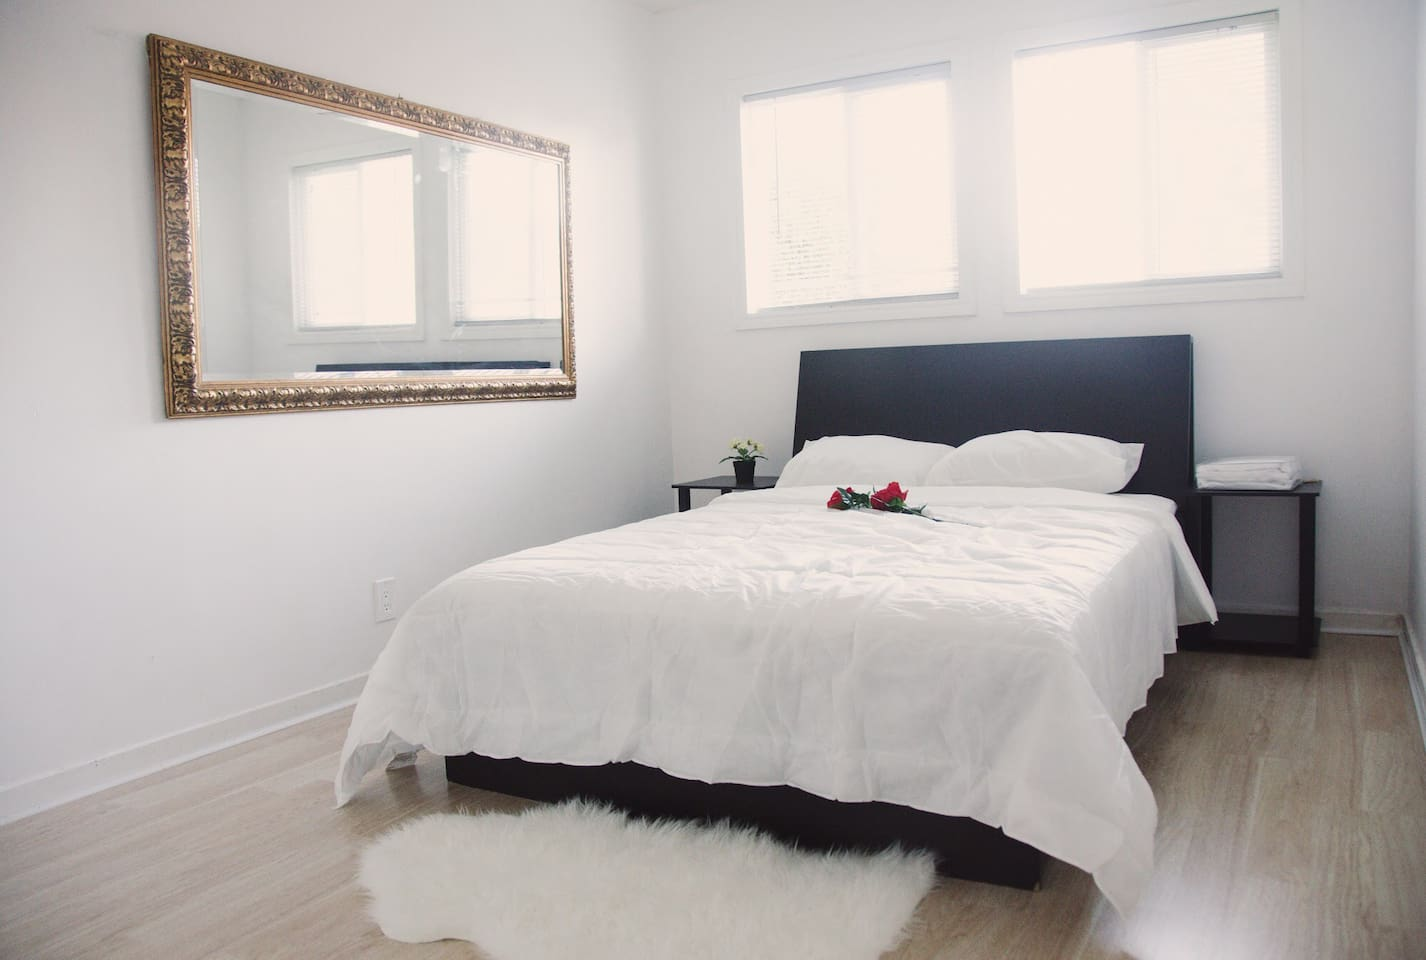 Enjoy a modern and elegant bedroom, with ample natural morning light for a gradual wake after a restful night's sleep.